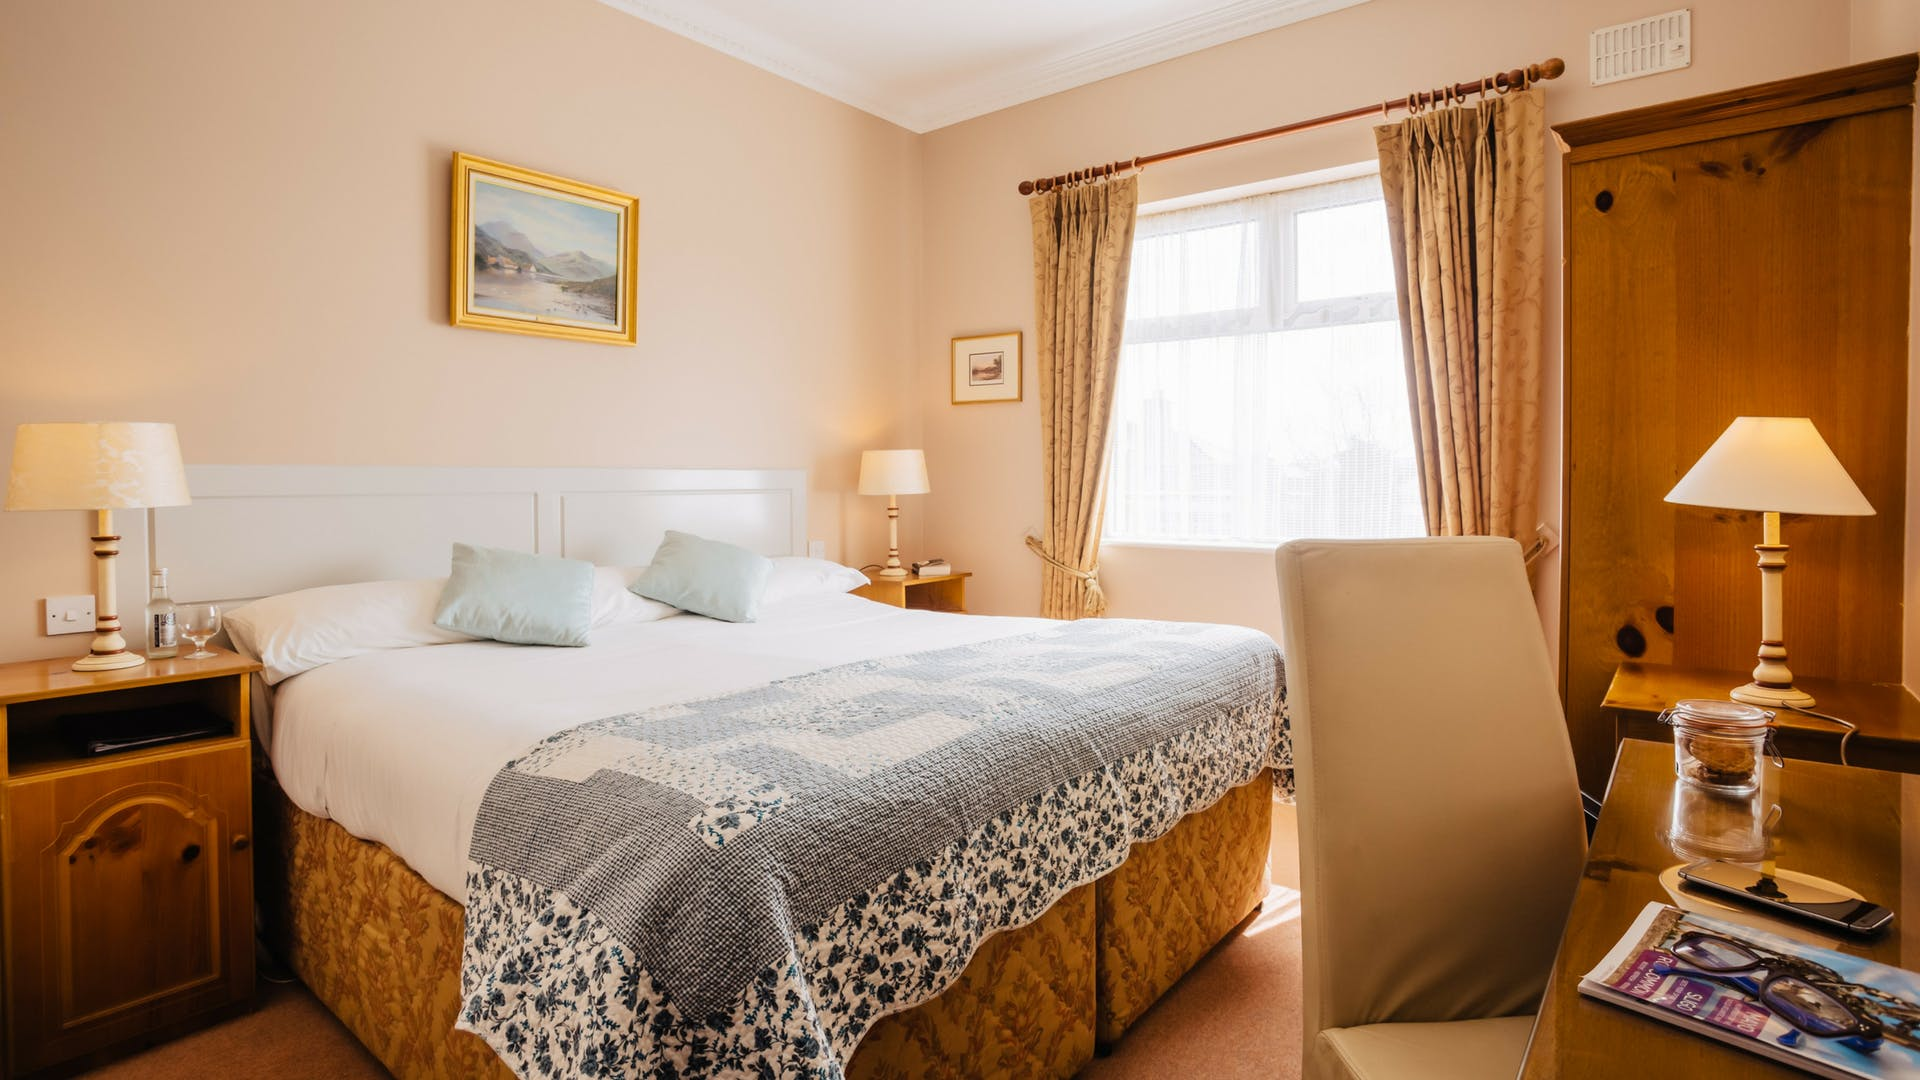 Stay in a double room at Gleesons Restaurant & Rooms, Roscommon